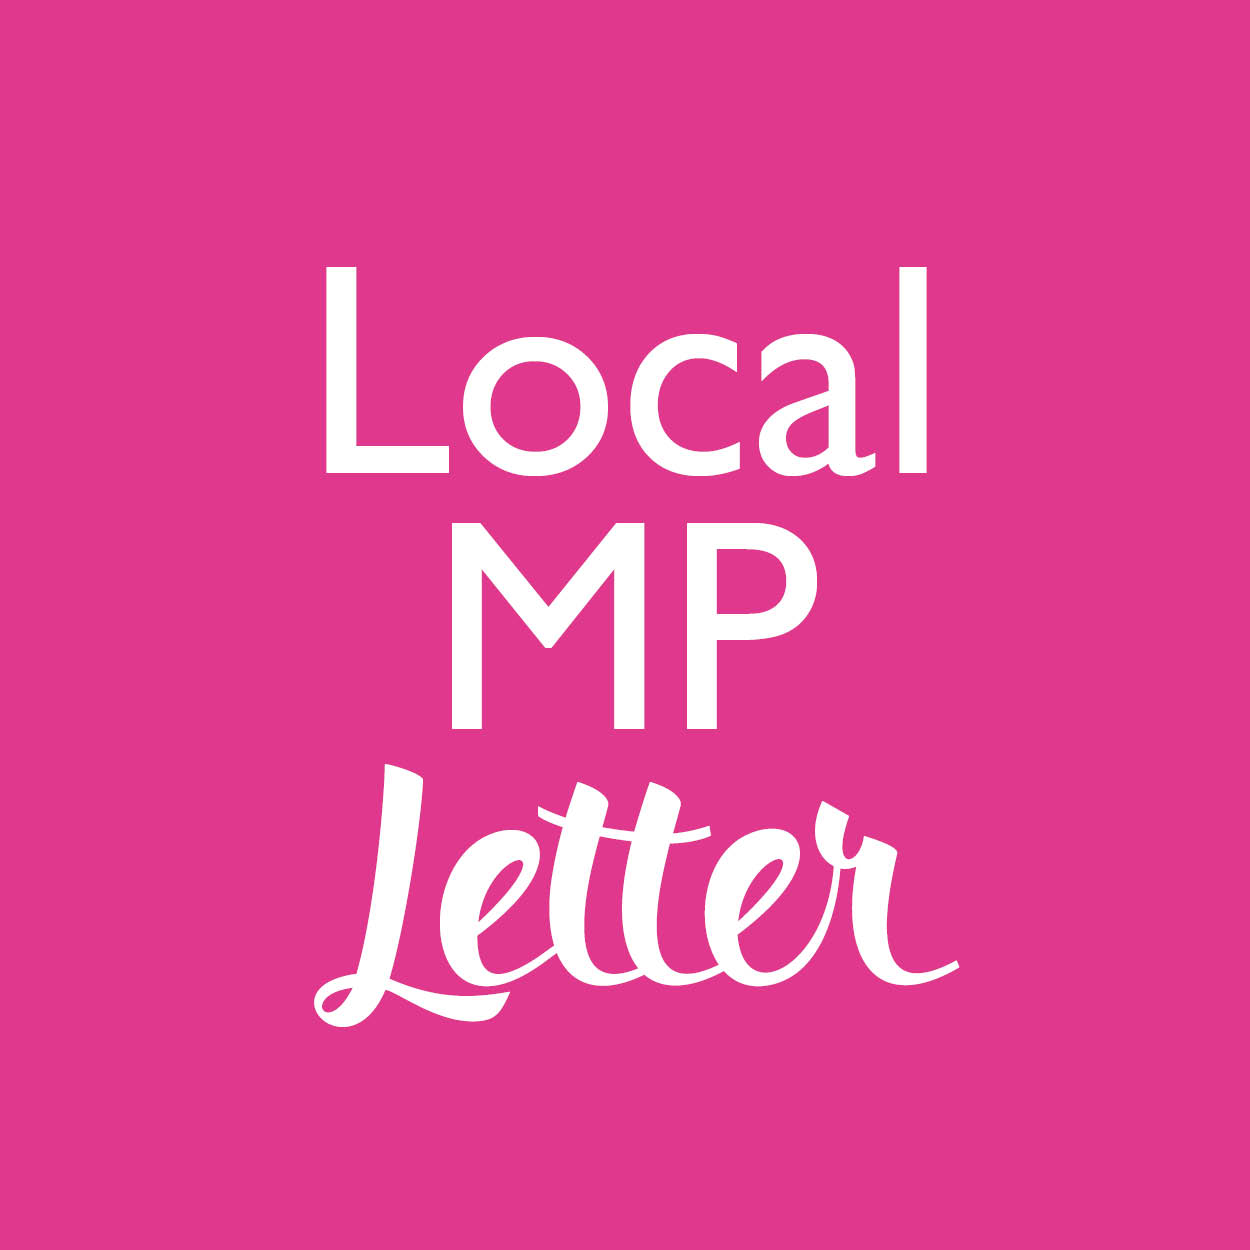 Template letter - local MPs 2021